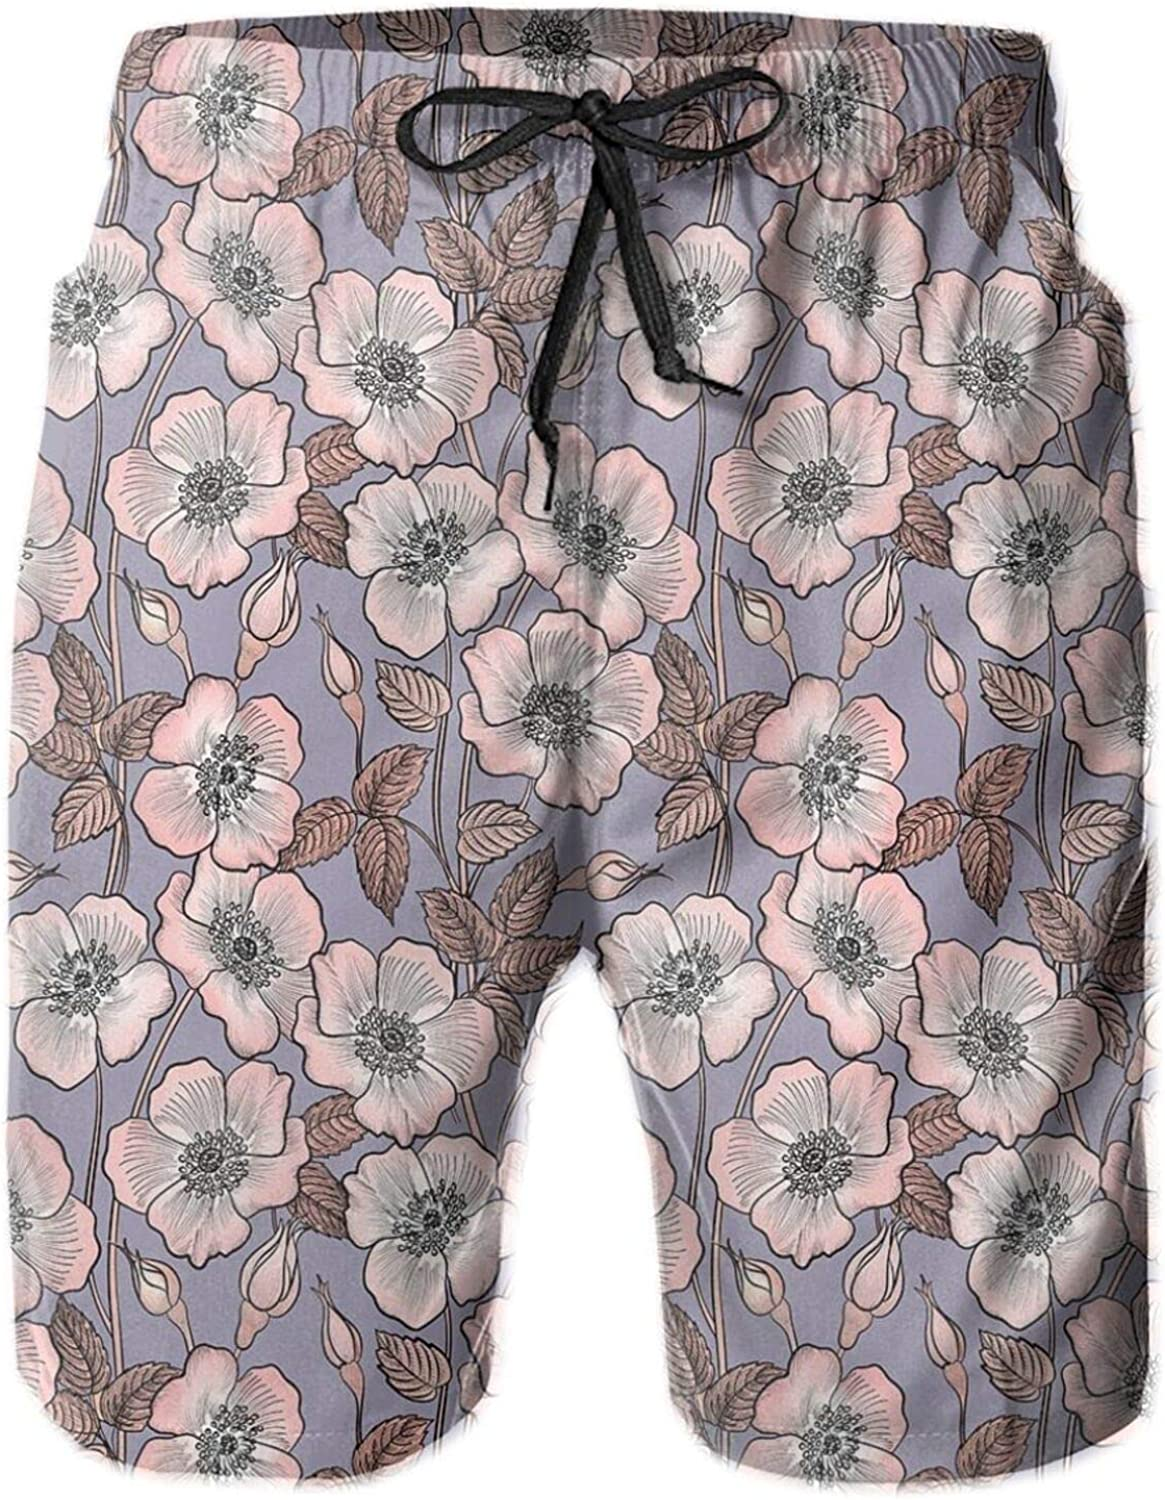 Graceful Nature Theme Bedding Plant Poppies Buds with Artistic Look French Garden Printed Beach Shorts for Men Swim Trucks Mesh Lining,XXL